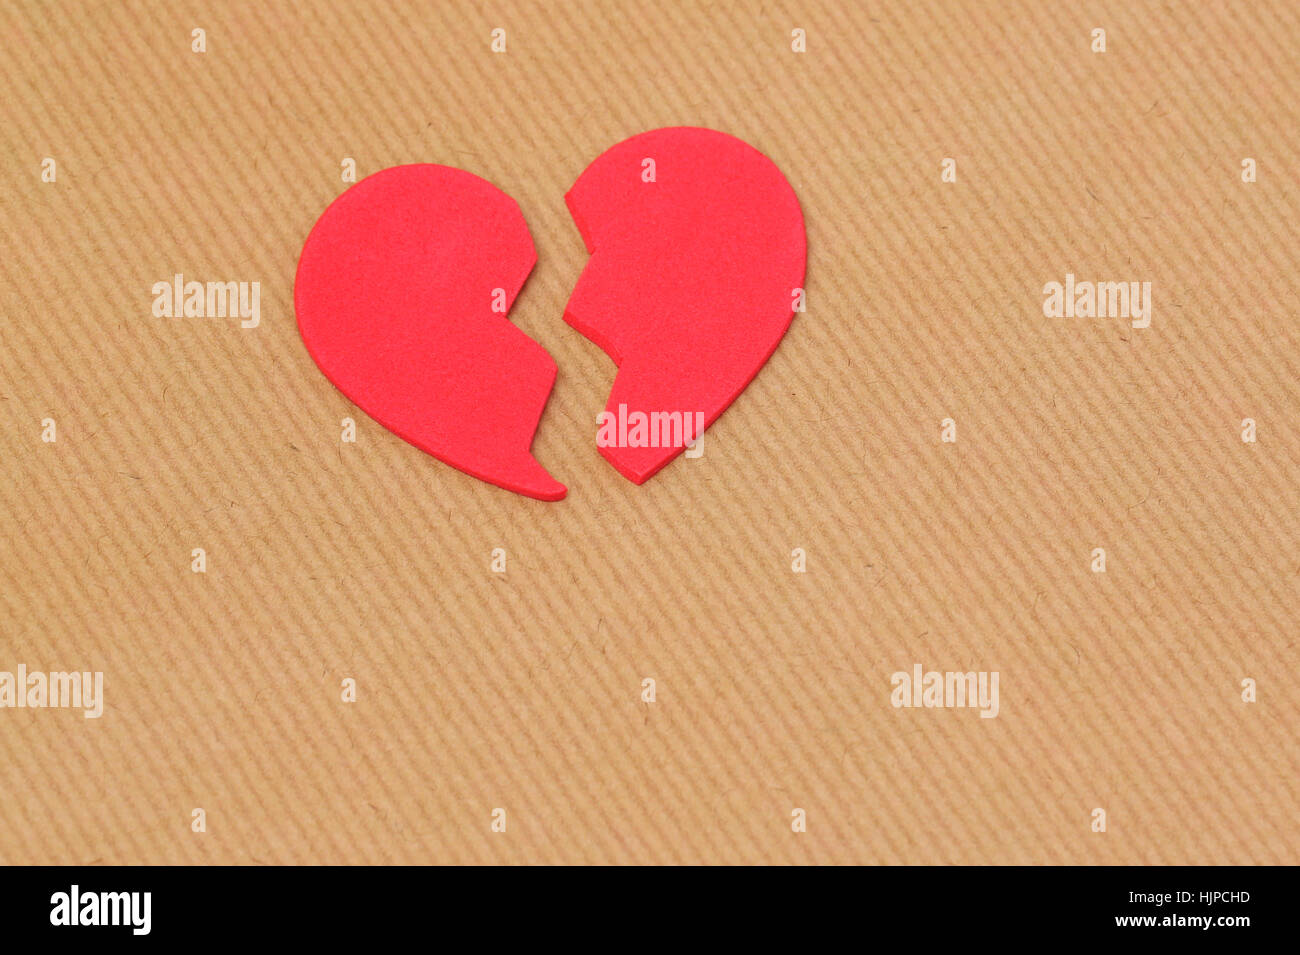 A broken heart - Stock Image